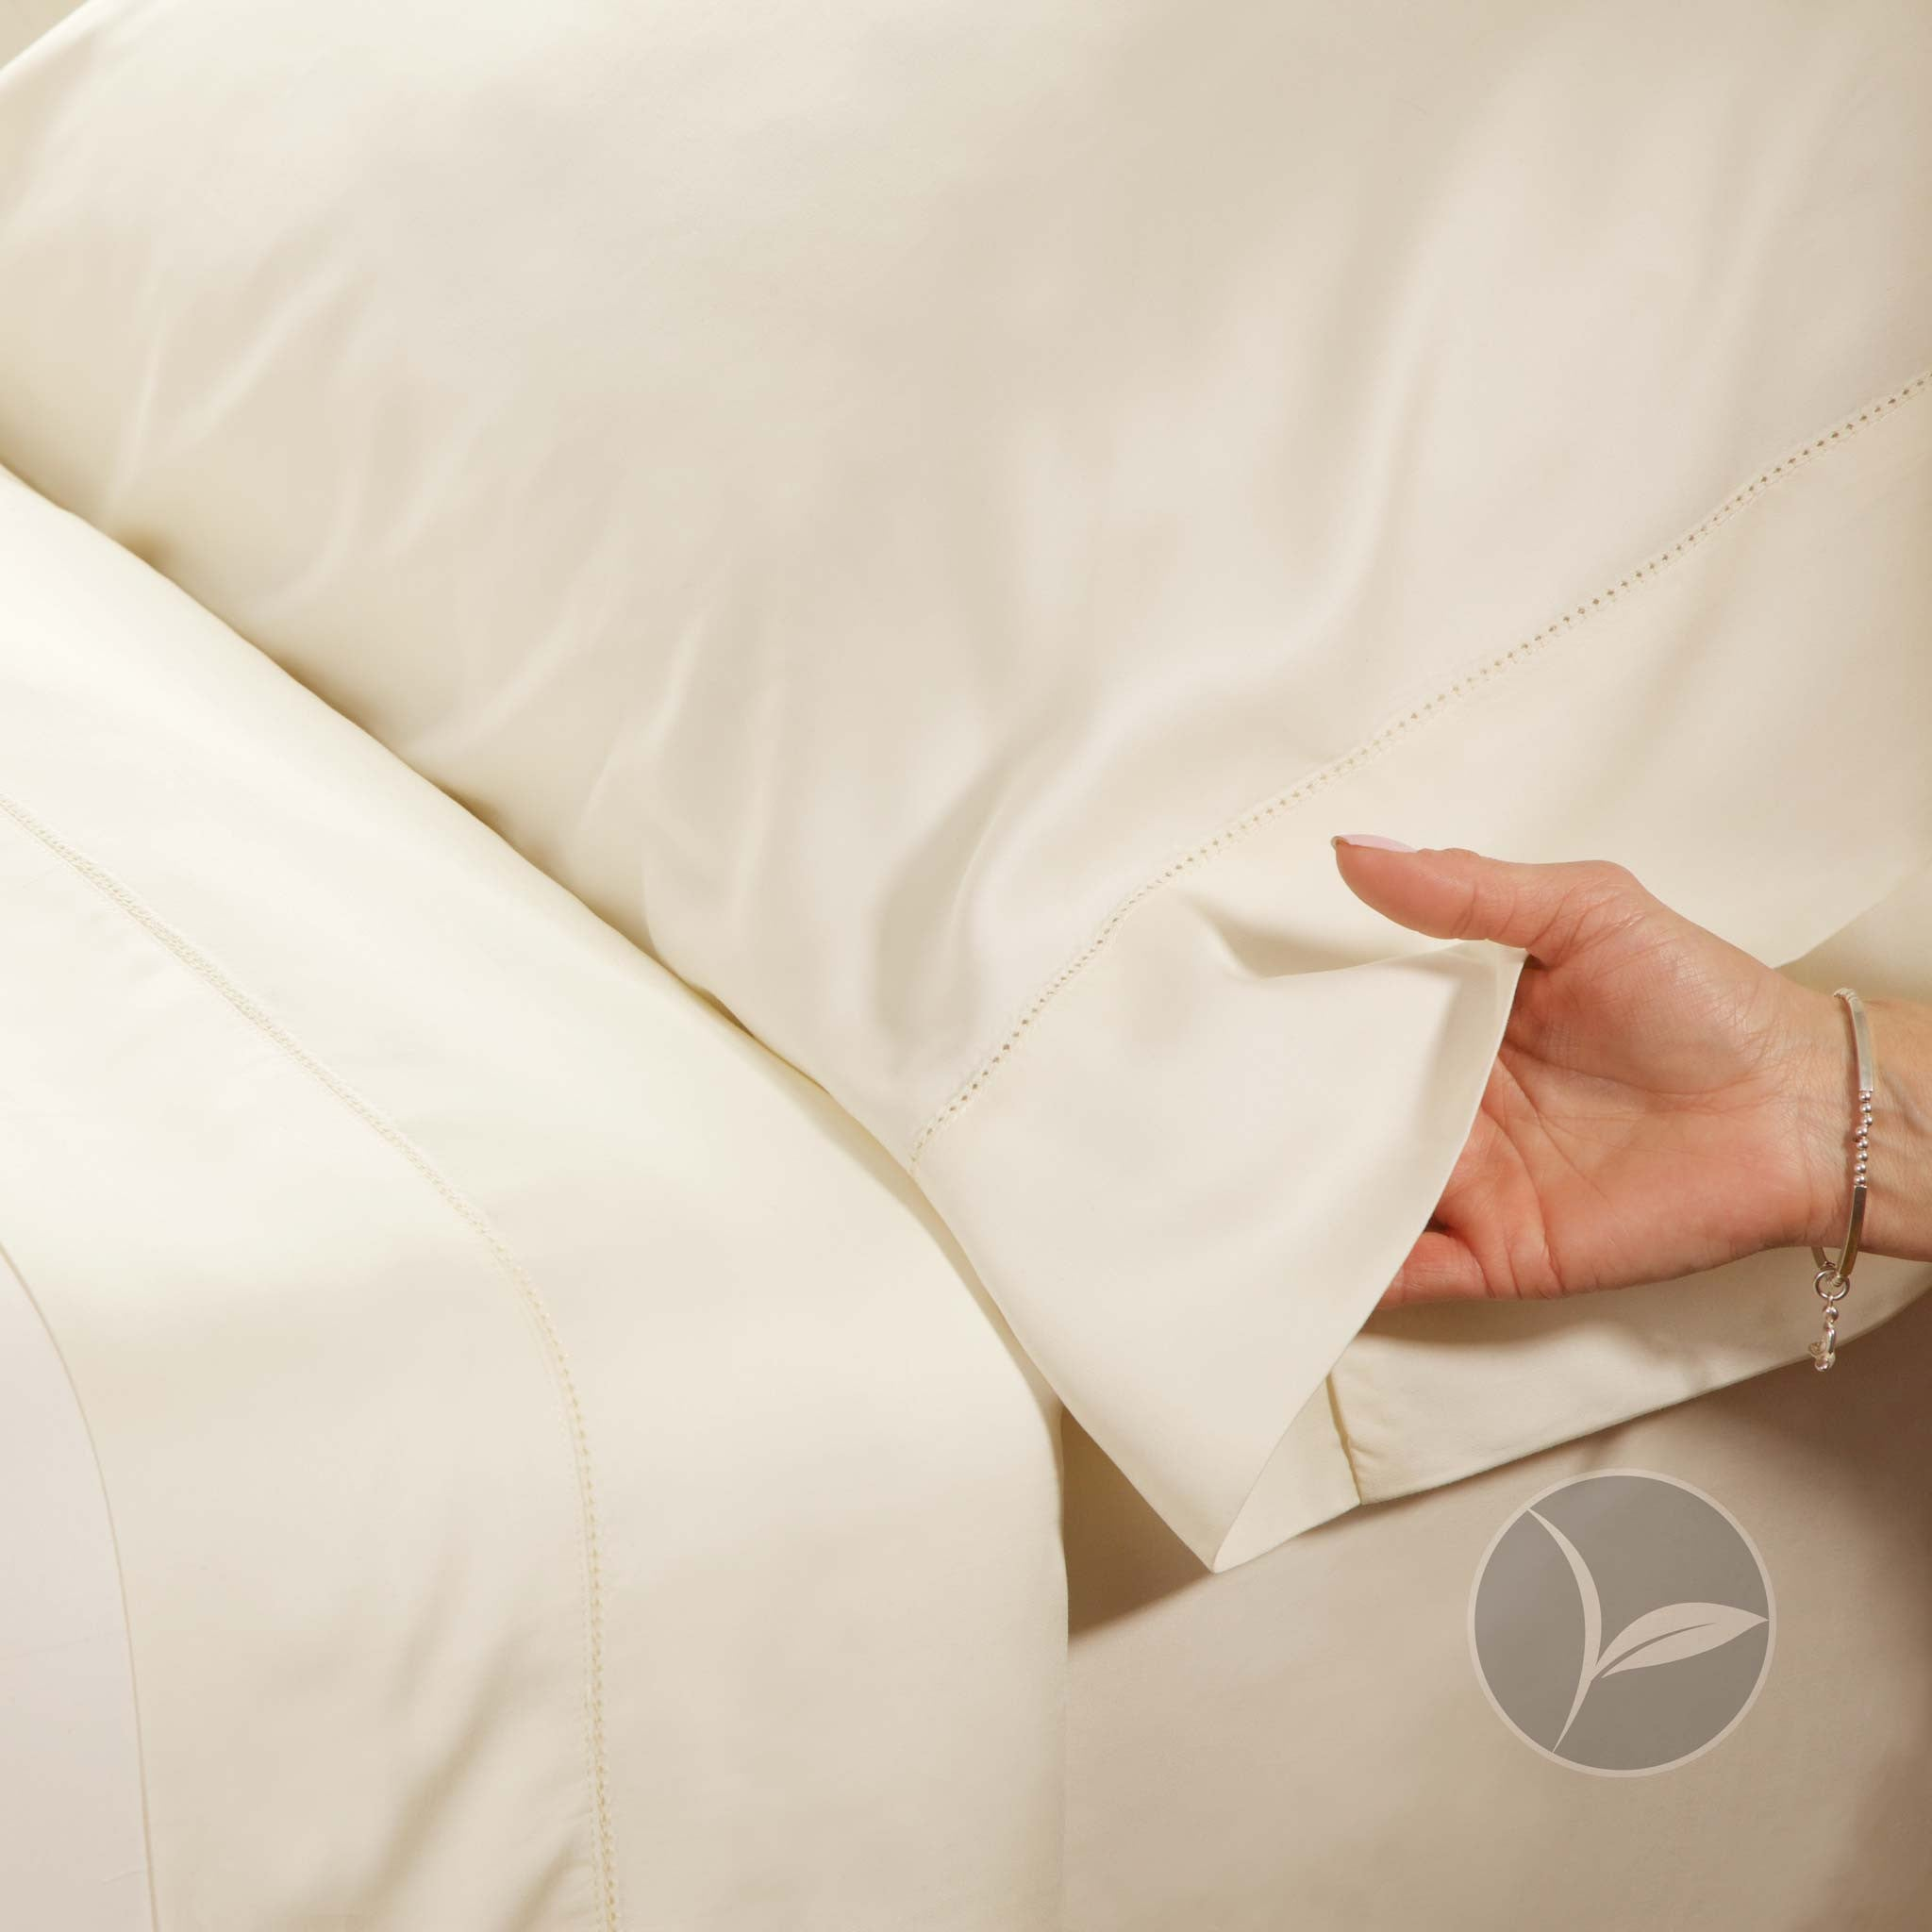 relief classic product reviews bamboo pillow flexi hres